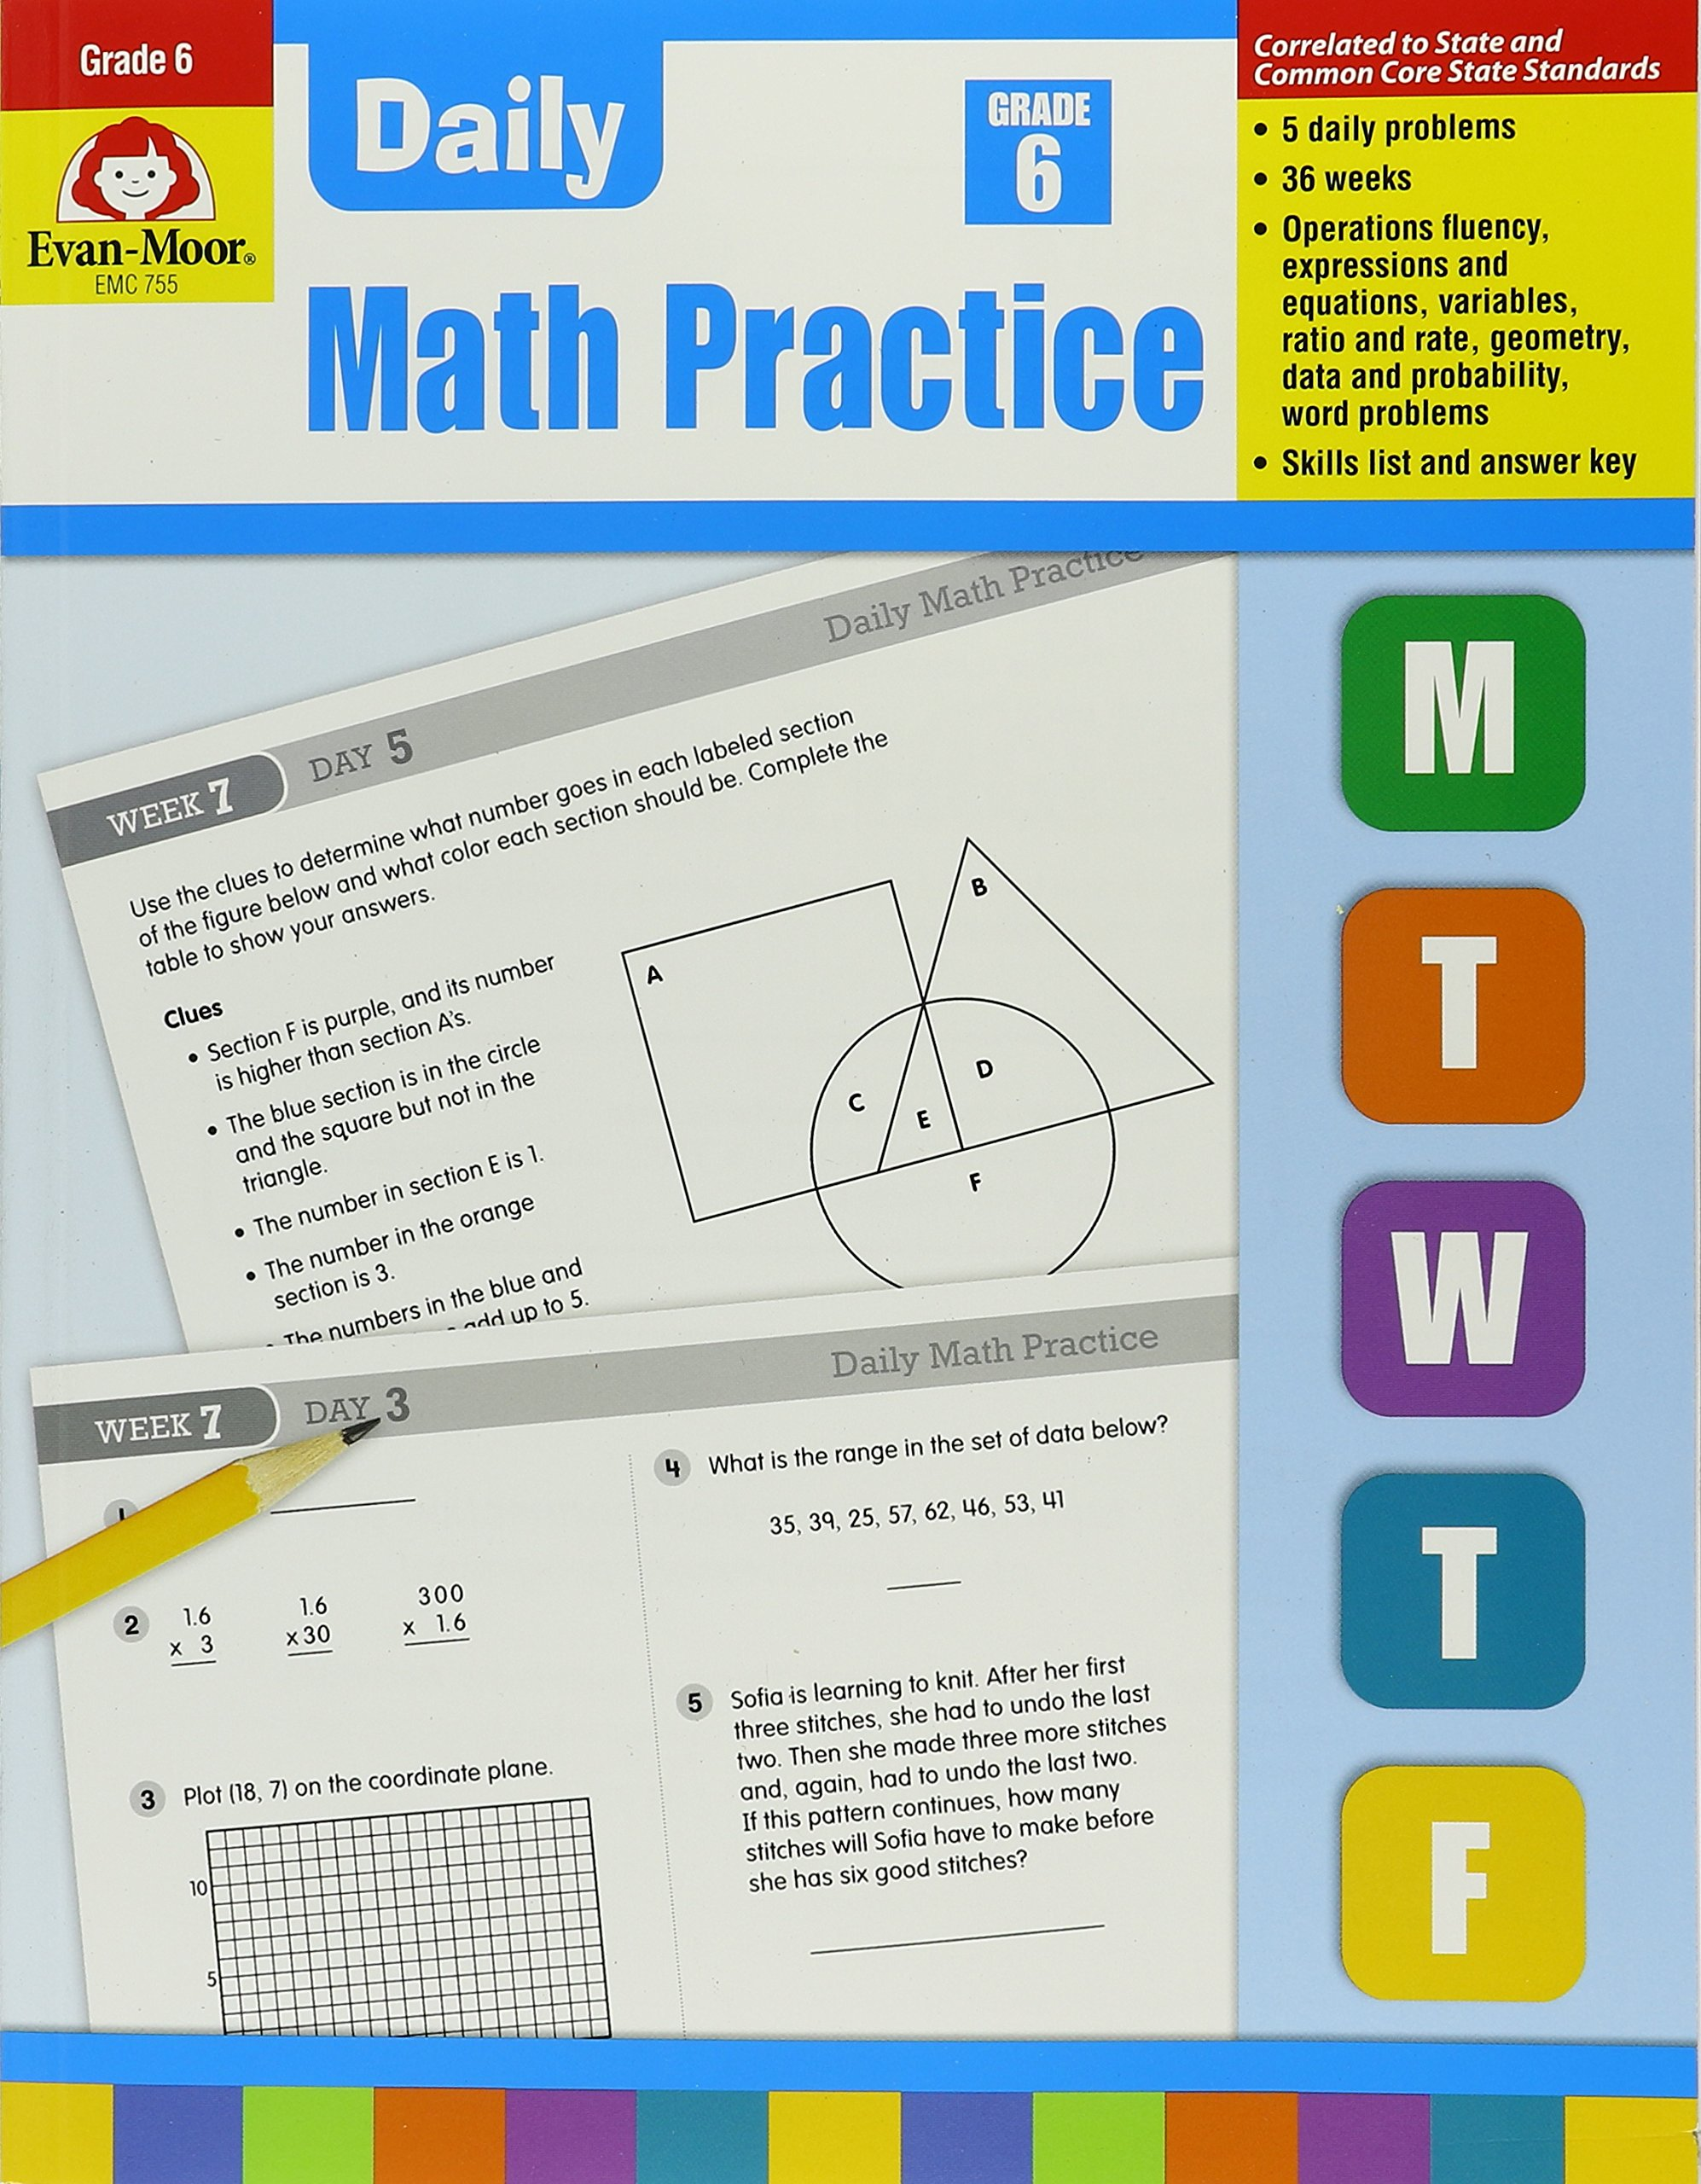 Daily math practice grade 6 wes tuttle 0023472007551 amazon daily math practice grade 6 wes tuttle 0023472007551 amazon books fandeluxe Gallery